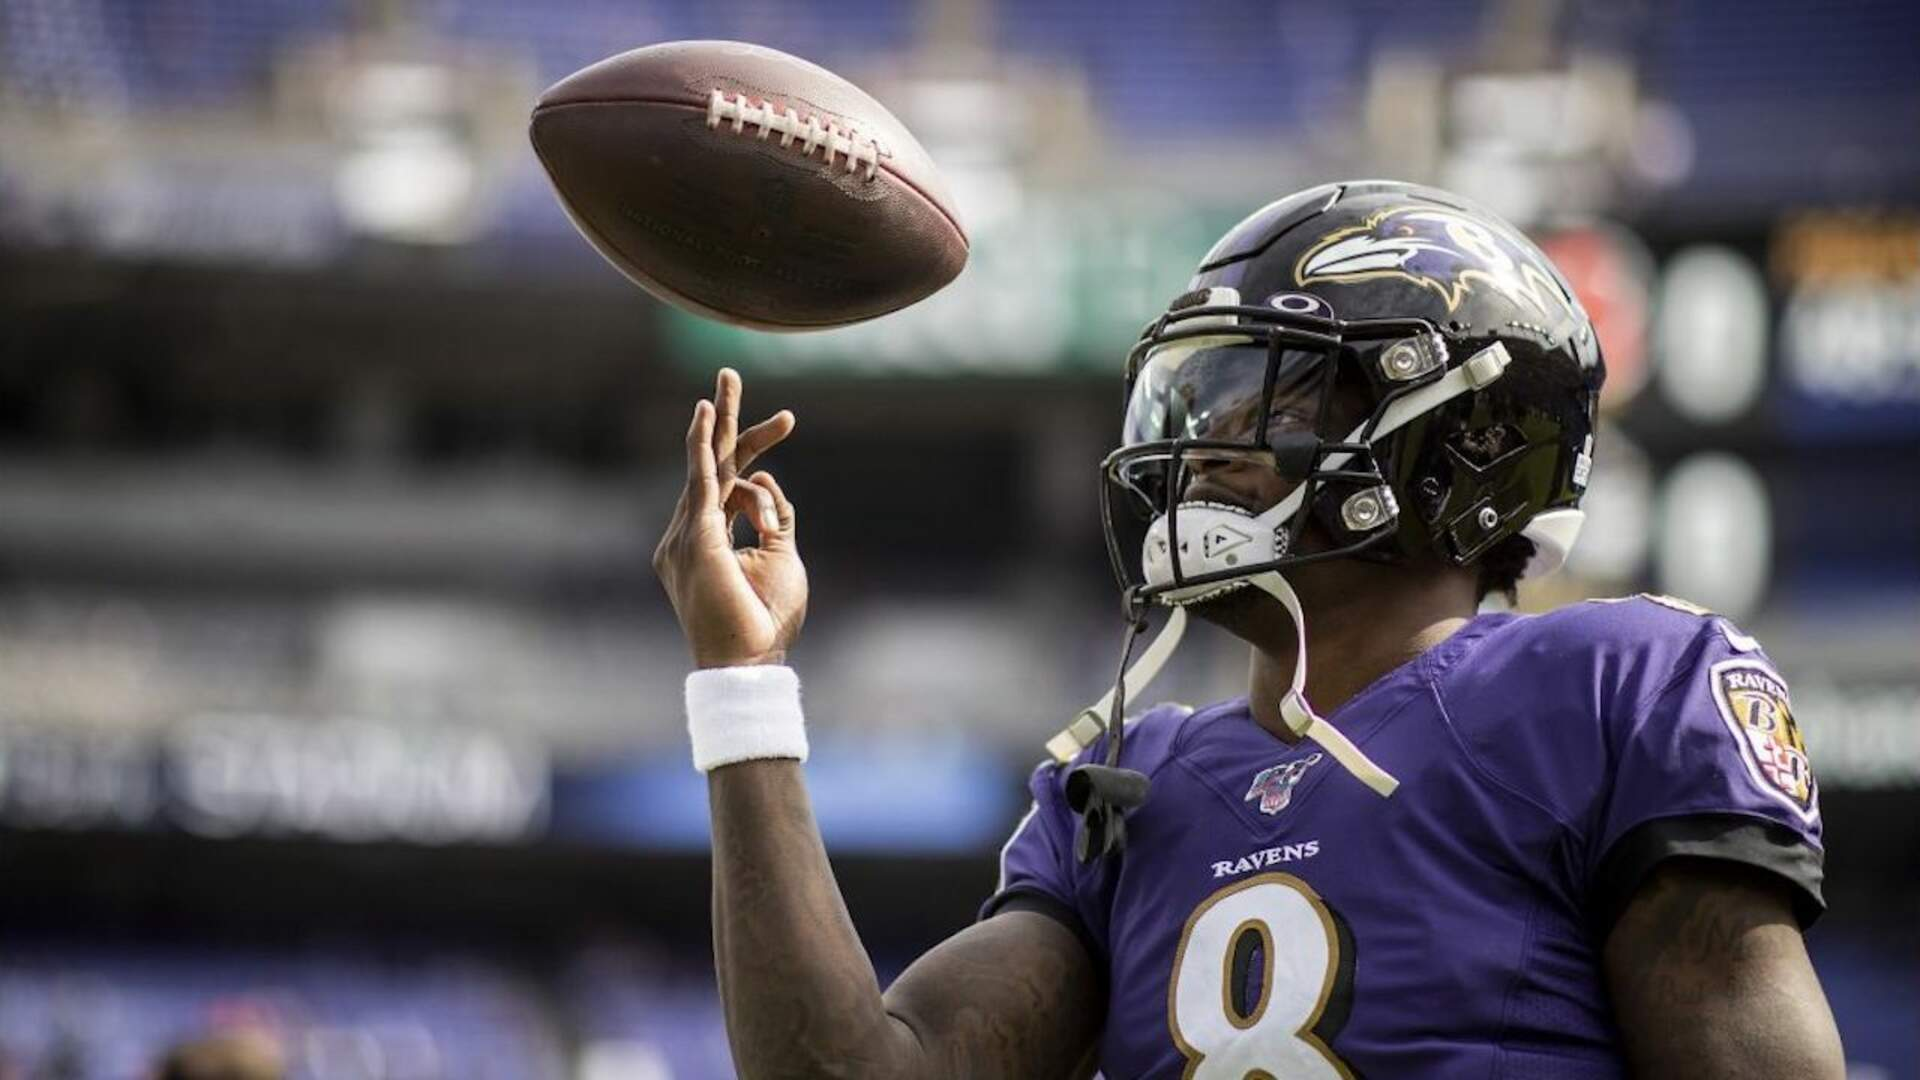 Ravens Quarterback Lamar Jackson Jumps the Gun on His Madden 21 Cover Reveal